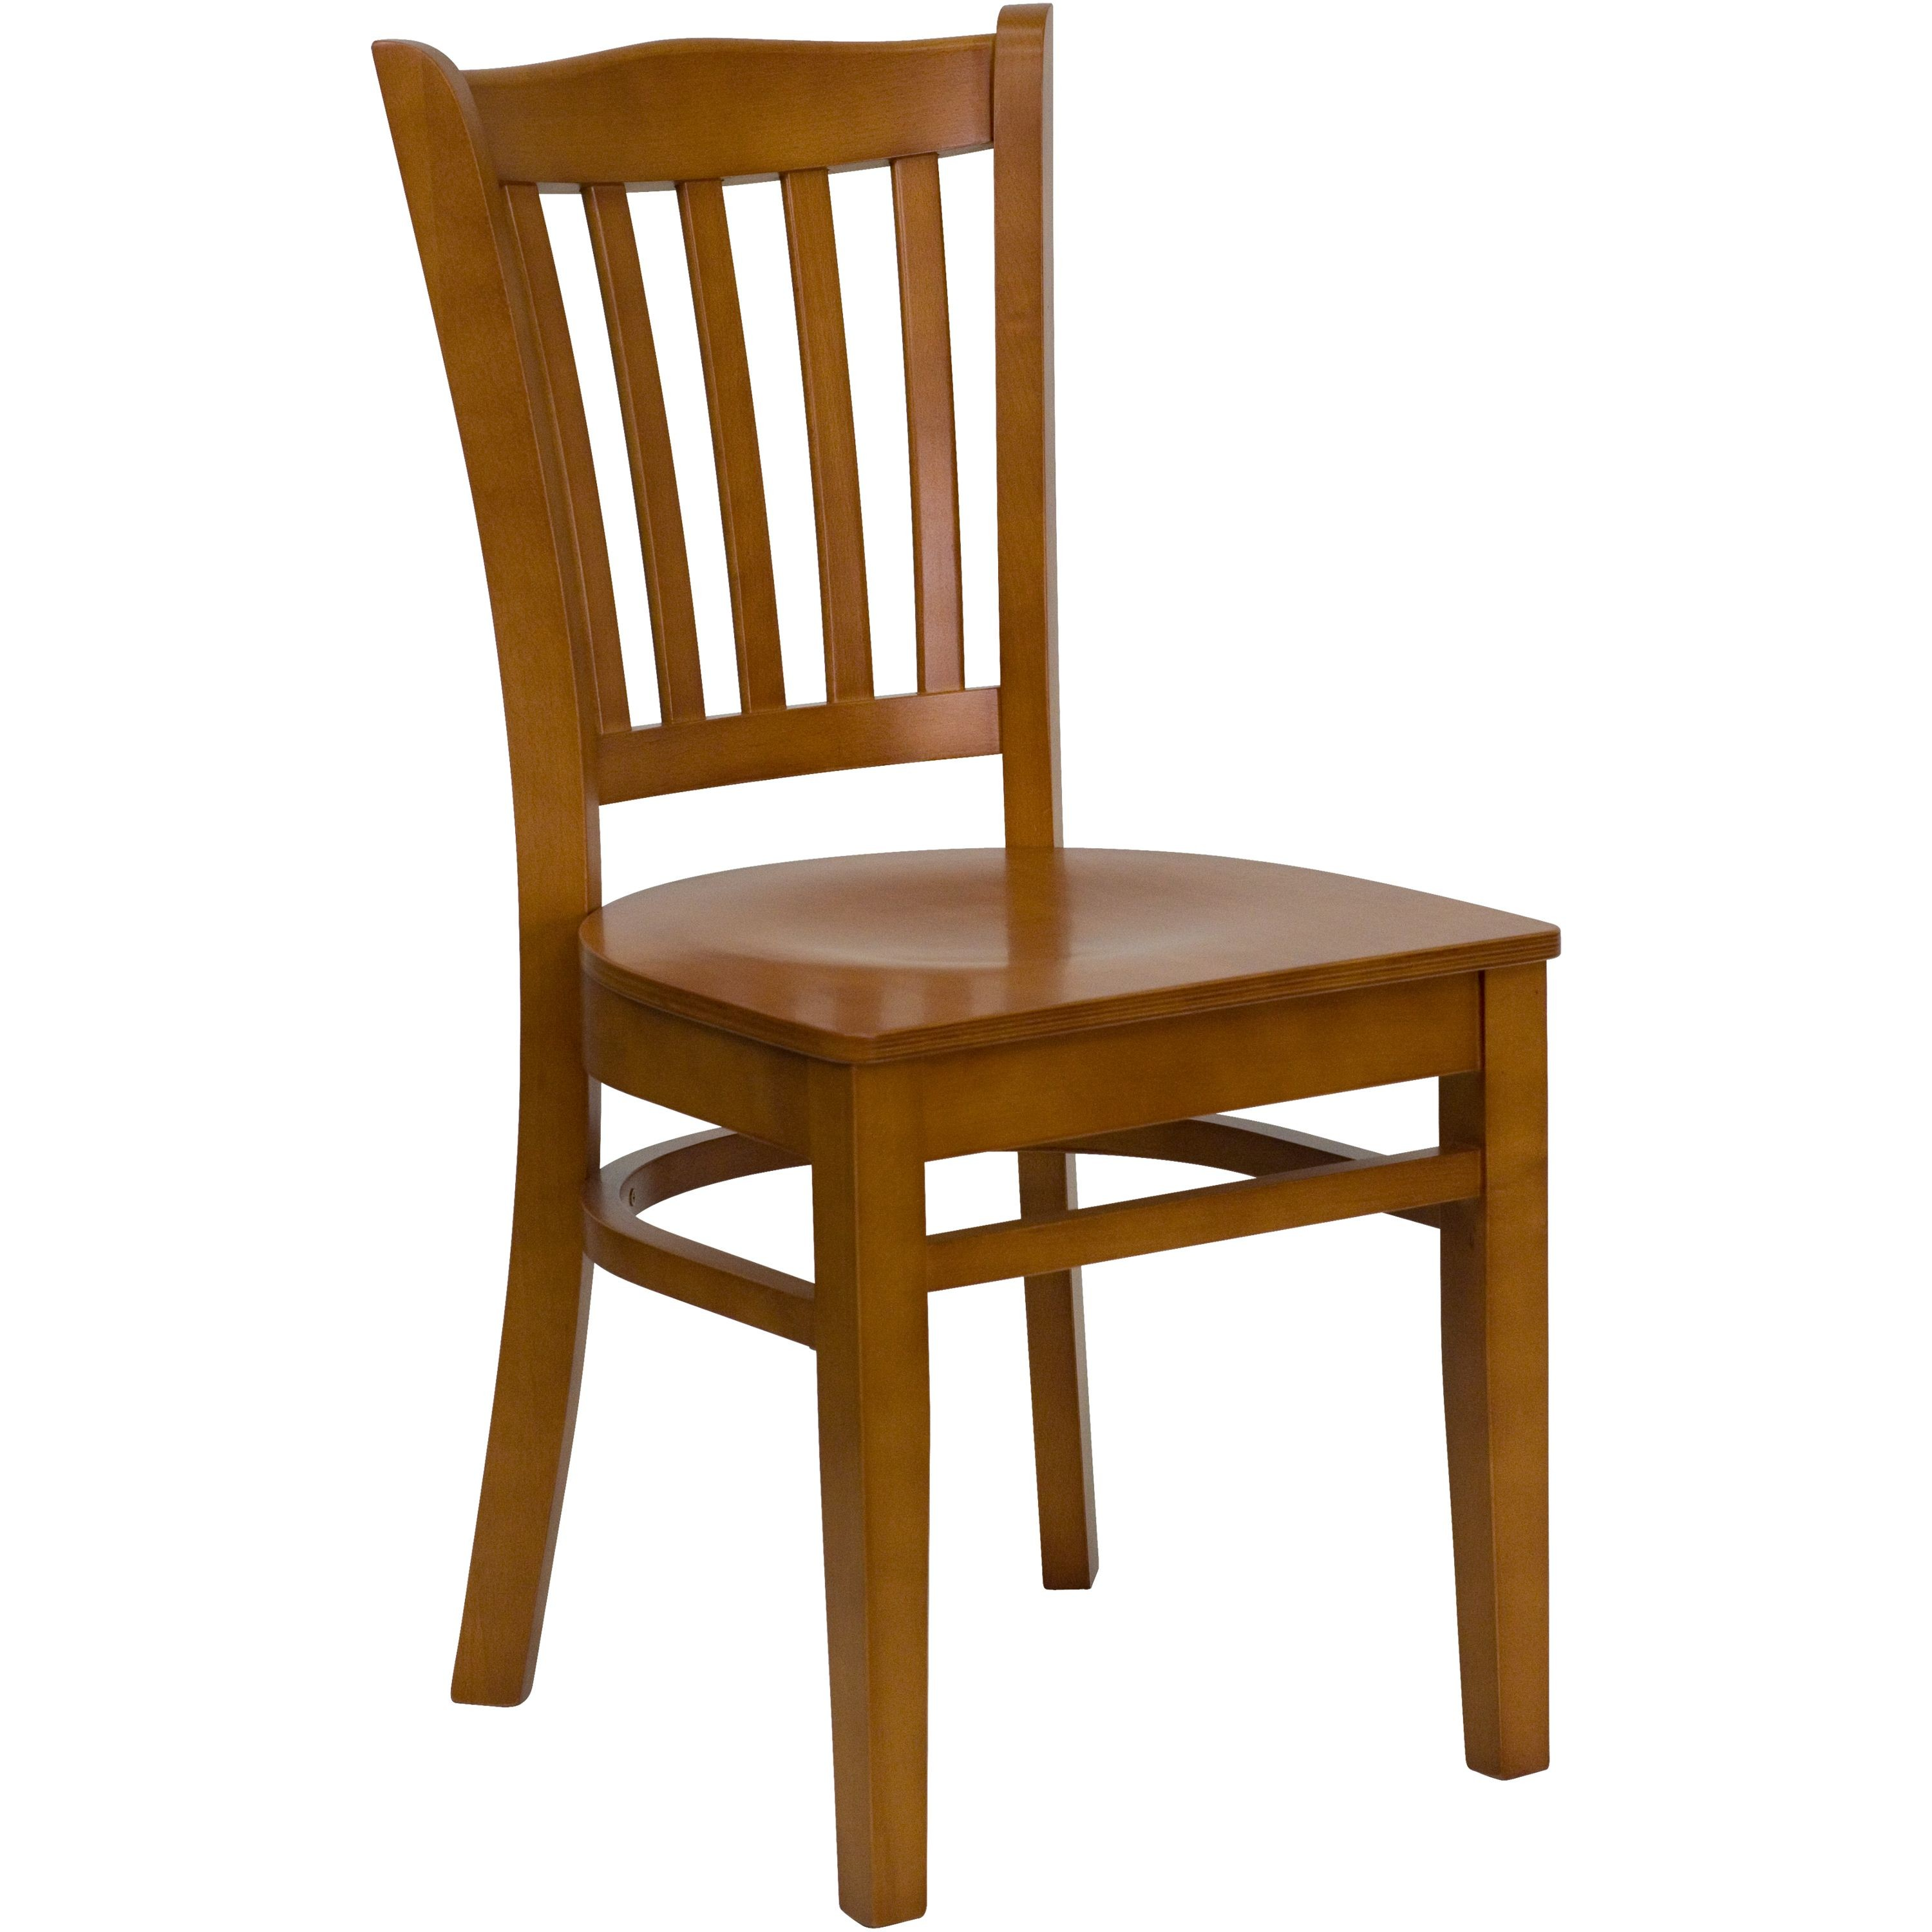 Vertical Slat Back Wood Chair with Cherry Finish